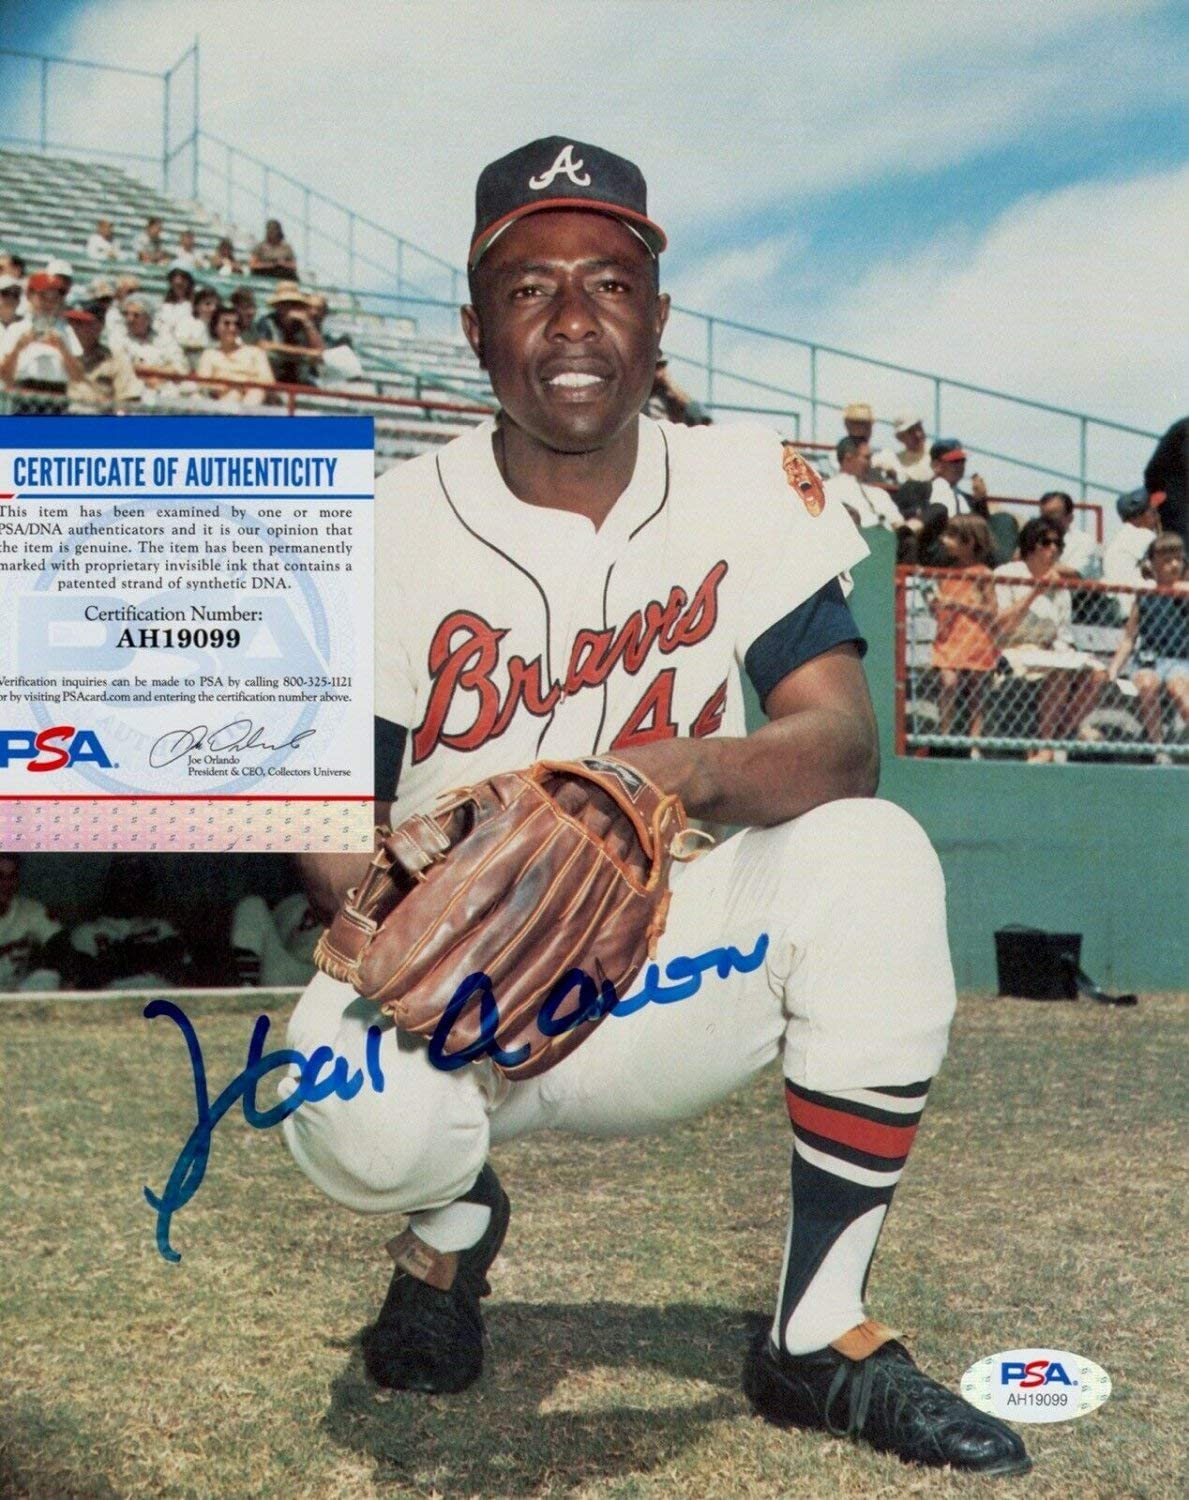 MILWAUKEE BRAVES YOUNG STAR PHIL NIEKRO IN THIS GREAT 8x10 PORTRAIT